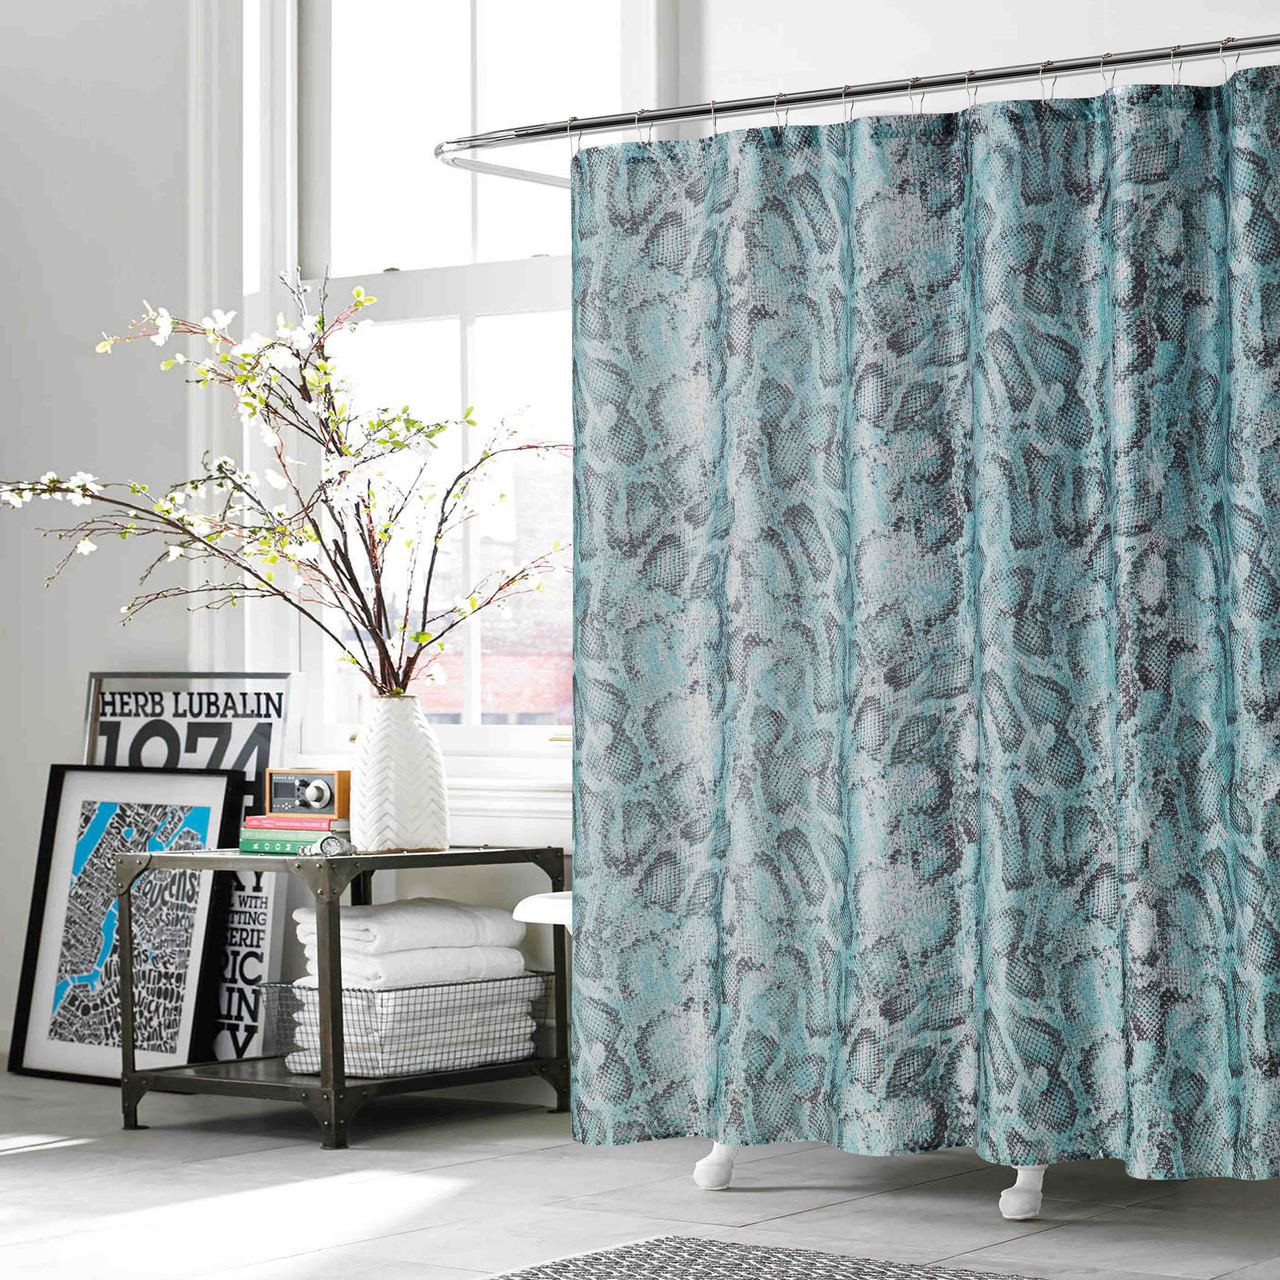 Teal And Charcoal Fabric Shower Curtain Snake Reptile Print 70 W X 72 L